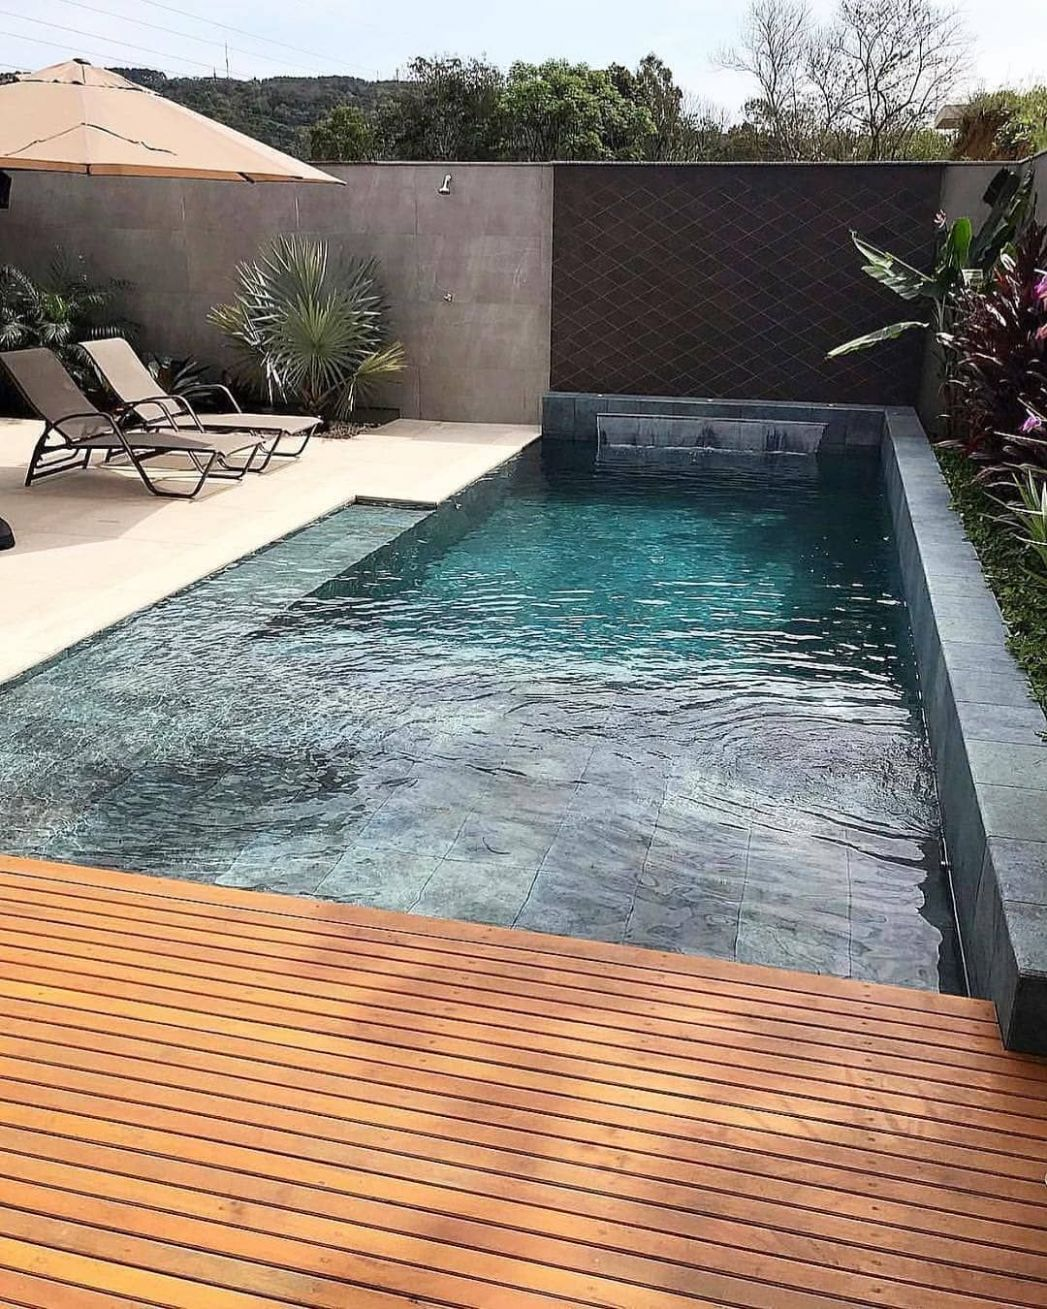 10 Best Swimming Pool Designs [Beautiful, Cool, and Modern] | Cool ..